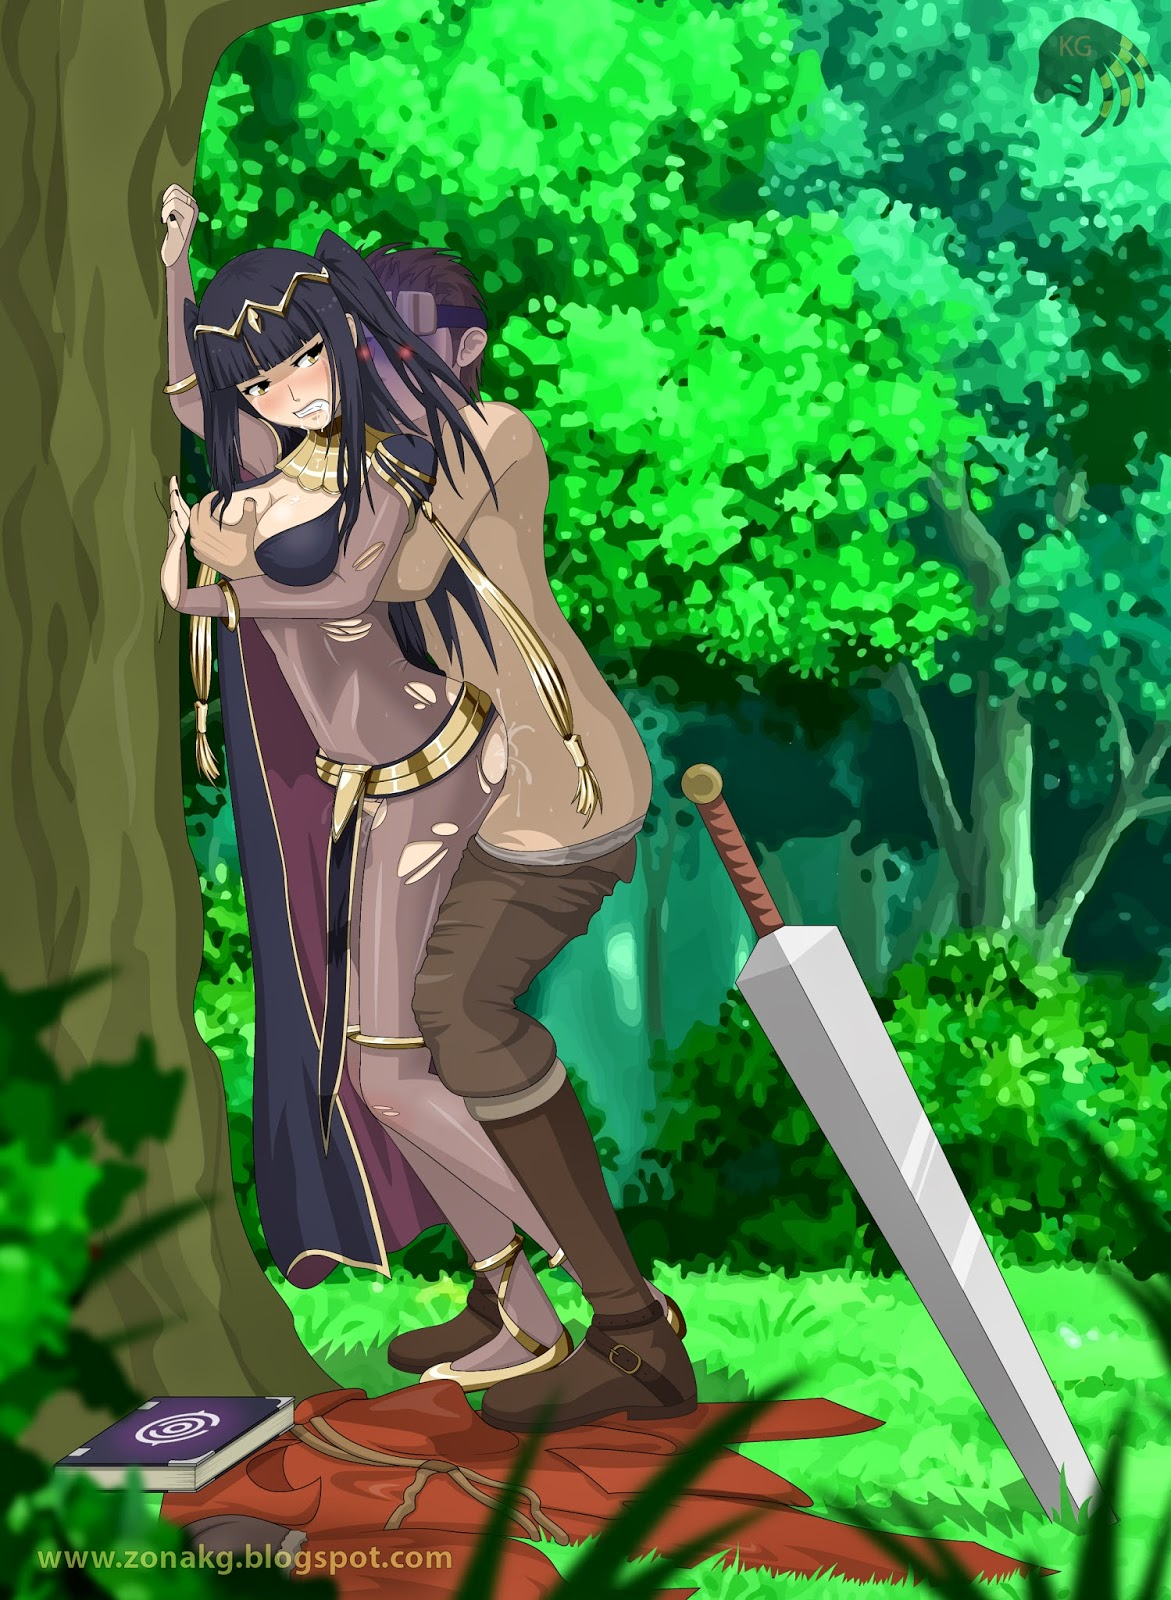 tharja hentai fire emblem standing sex cum in mouth inside resurect anime zonakg comando unfezant